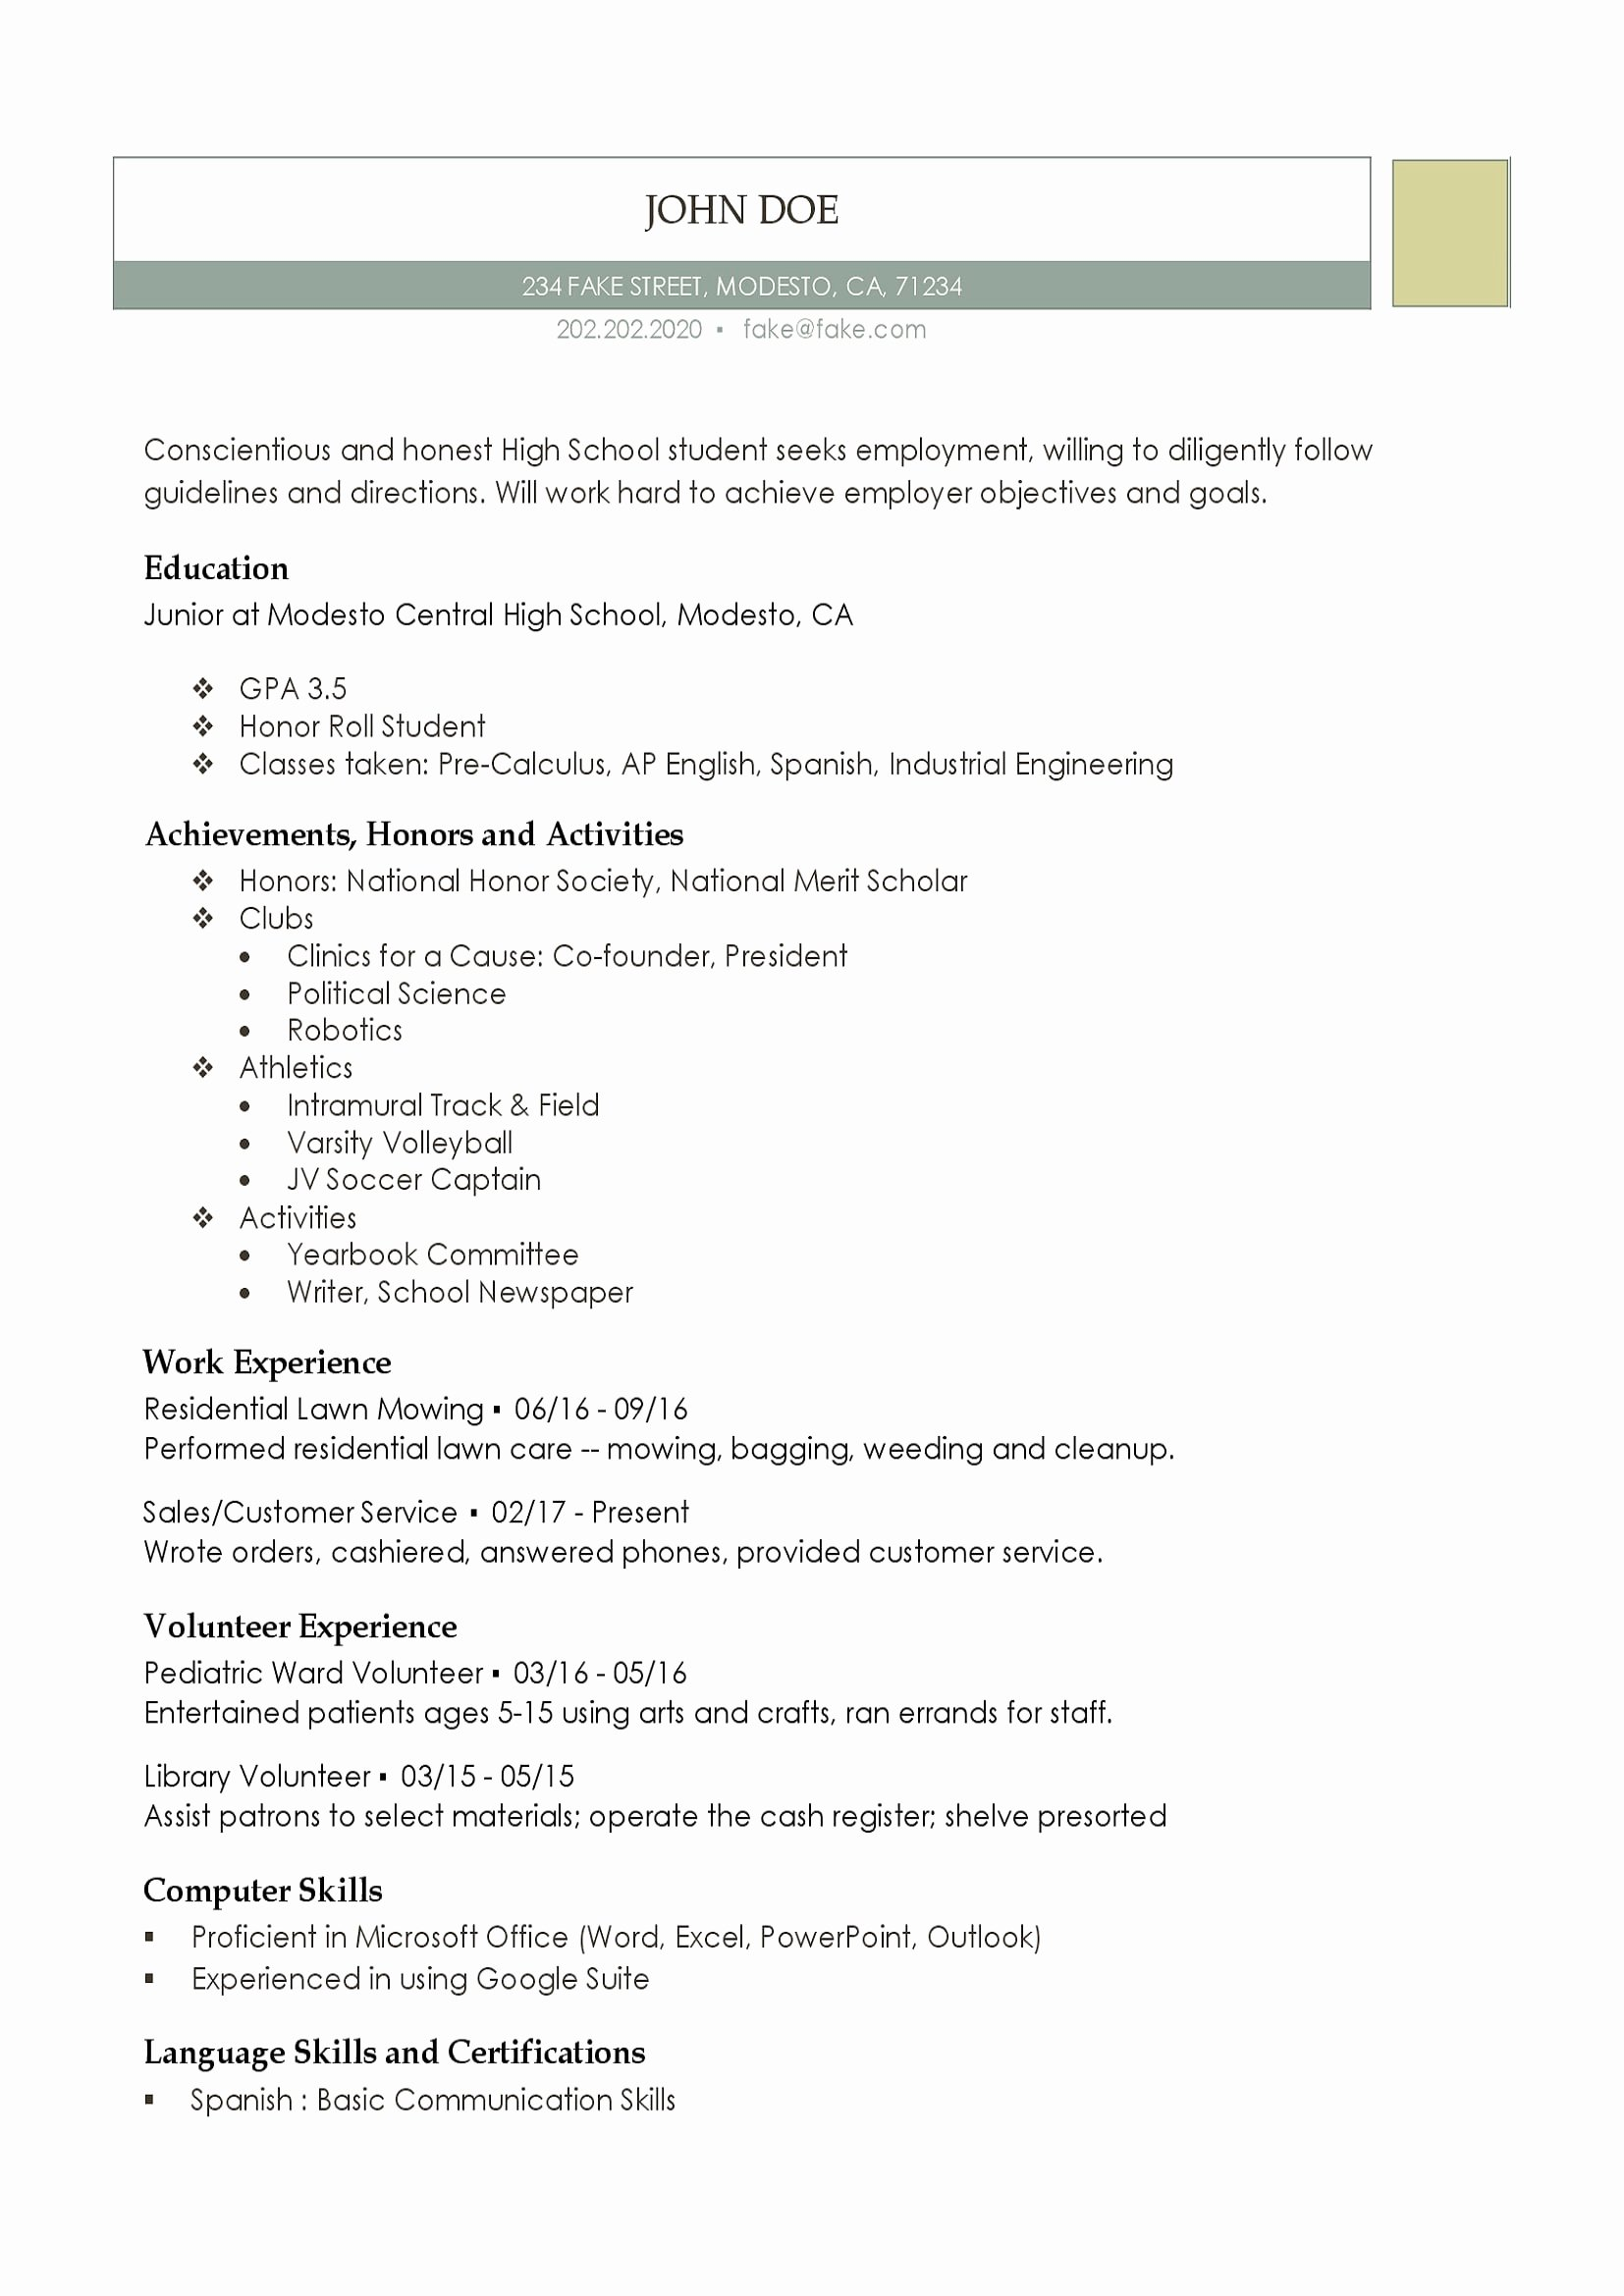 Resume Examples for Highschool Students Best Of High School Resume Resumes Perfect for High School Students